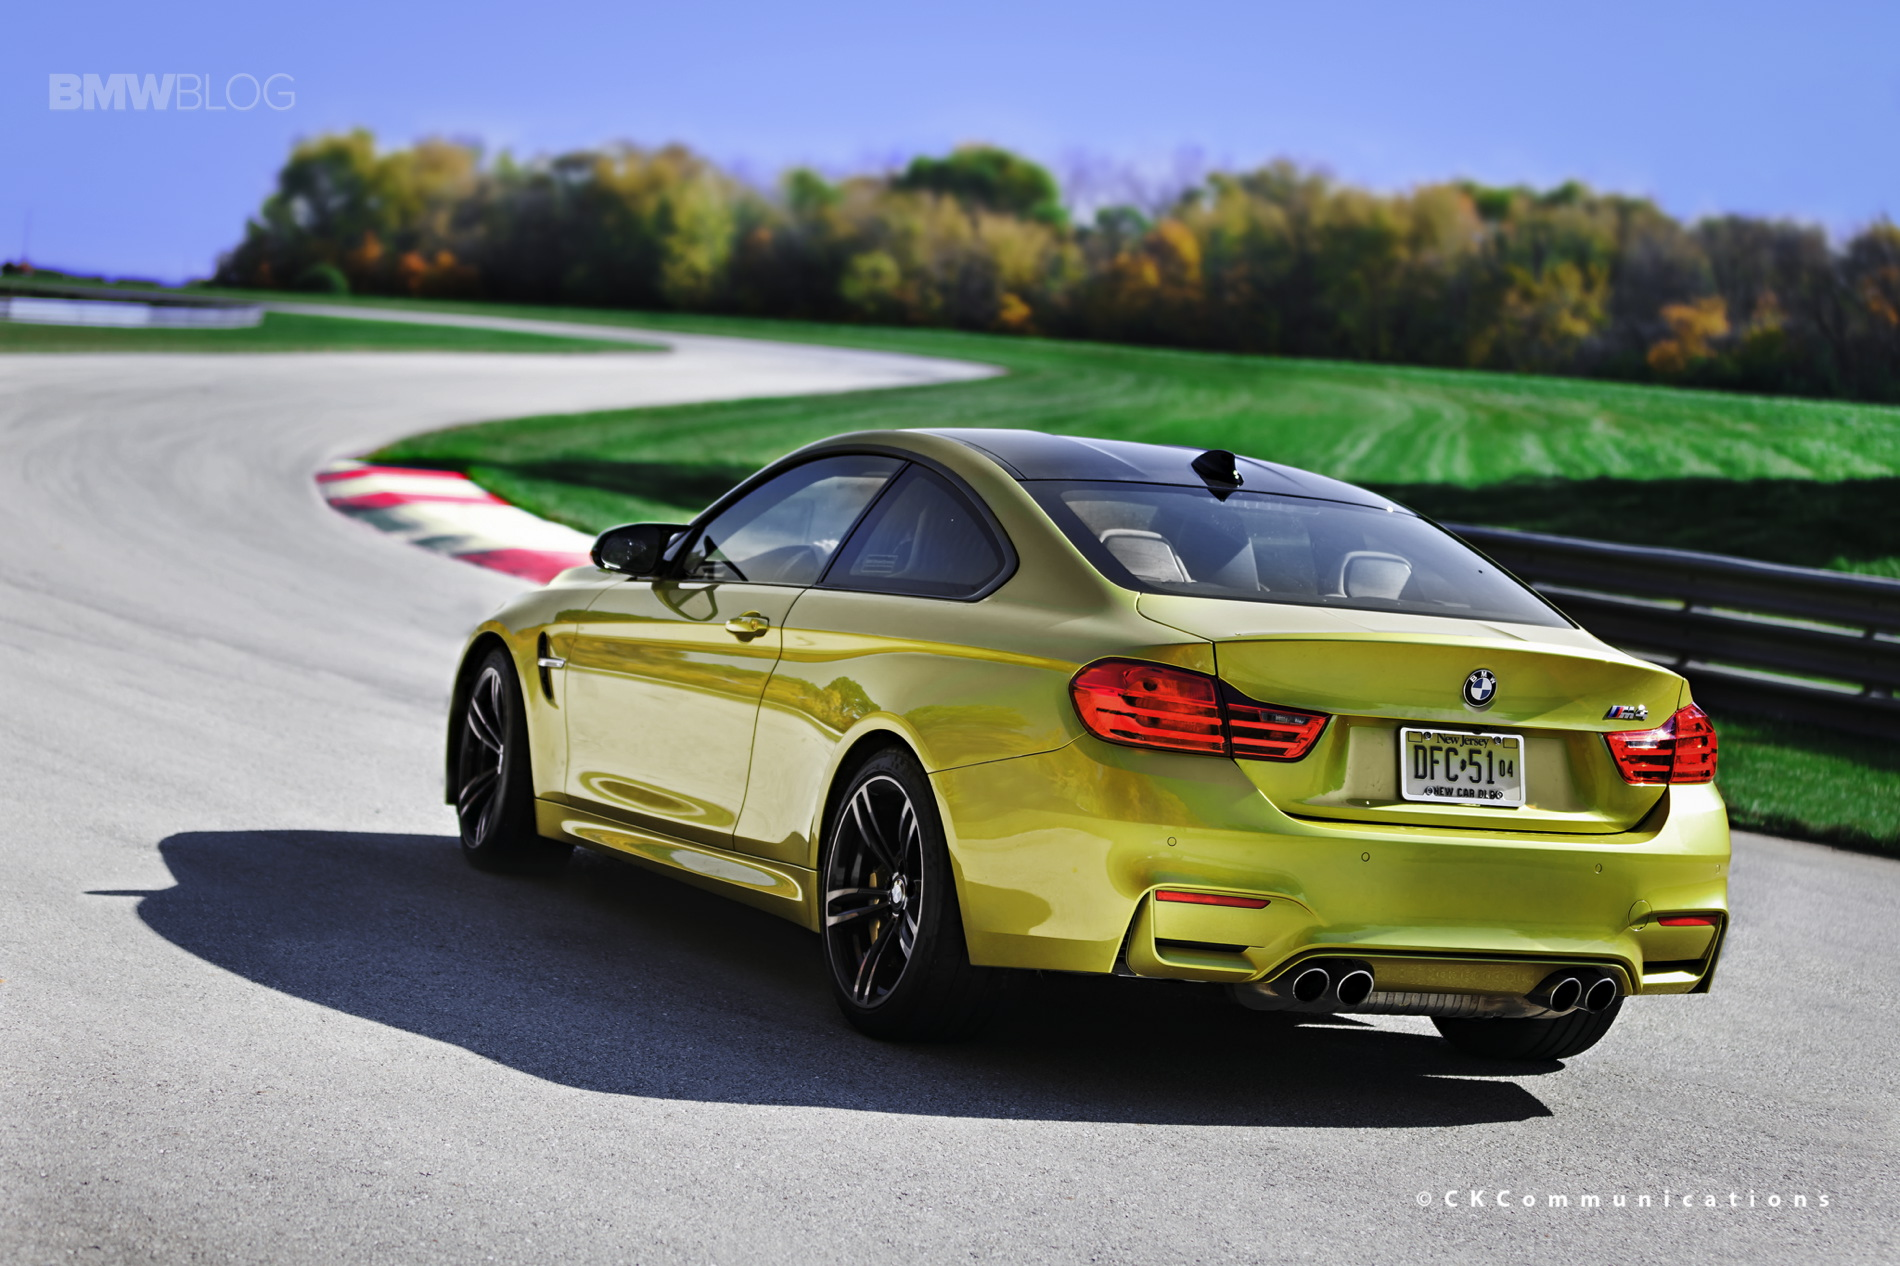 2015 bmw m4 coupe austin yellow images 20